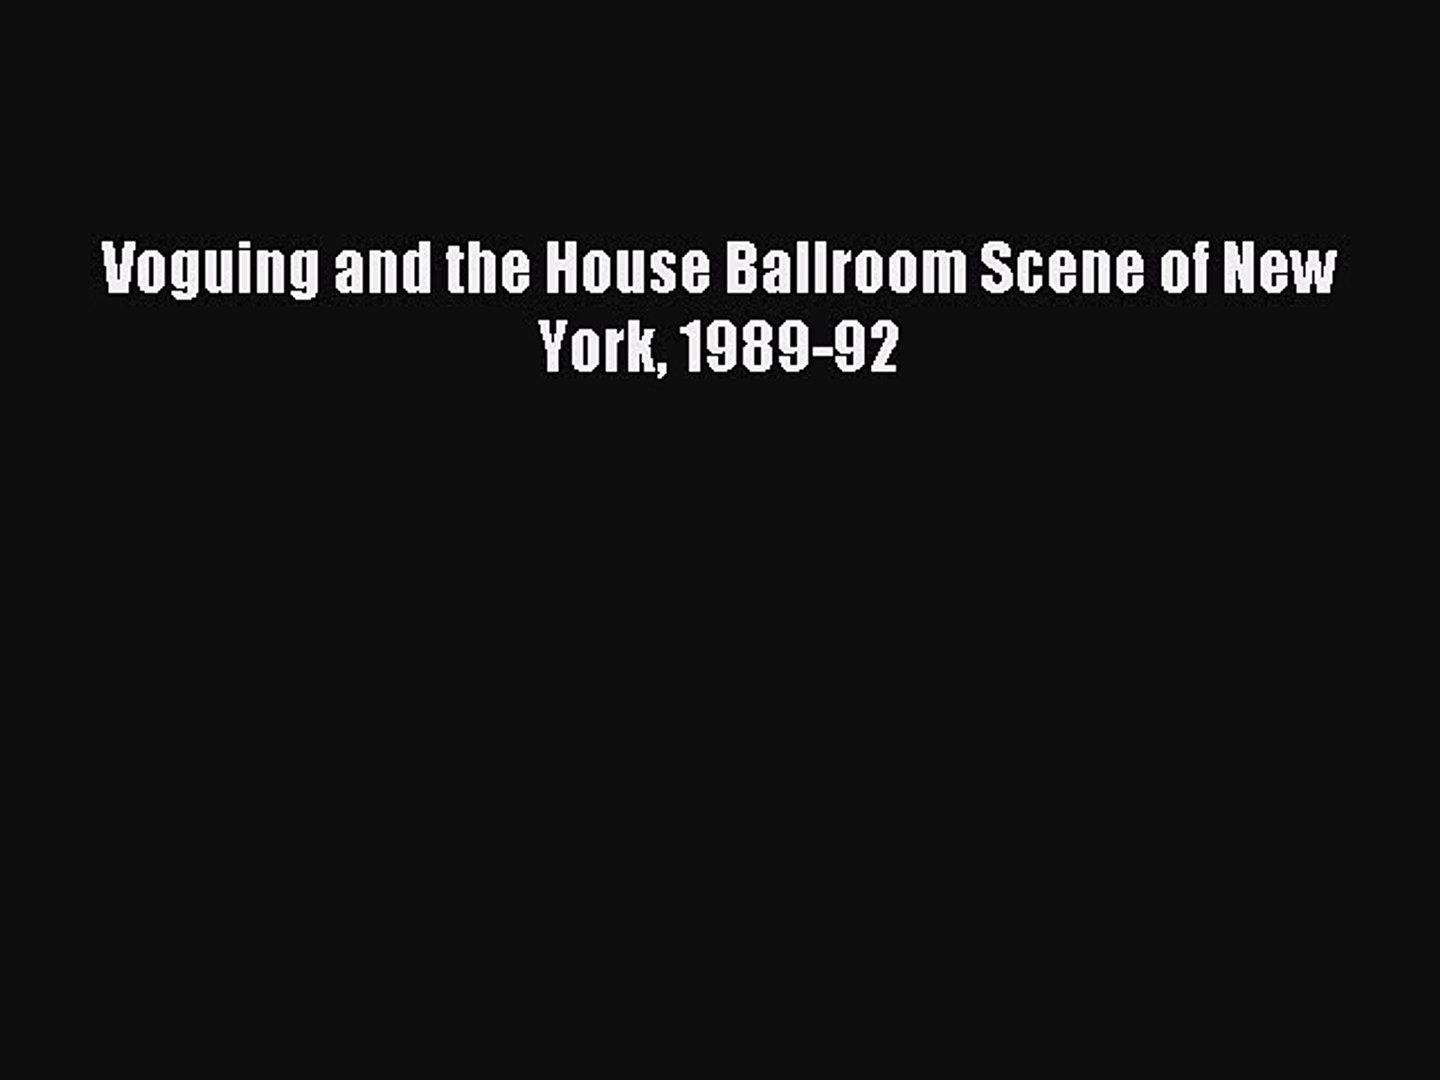 Read Voguing and the House Ballroom Scene of New York 1989-92 Ebook Online